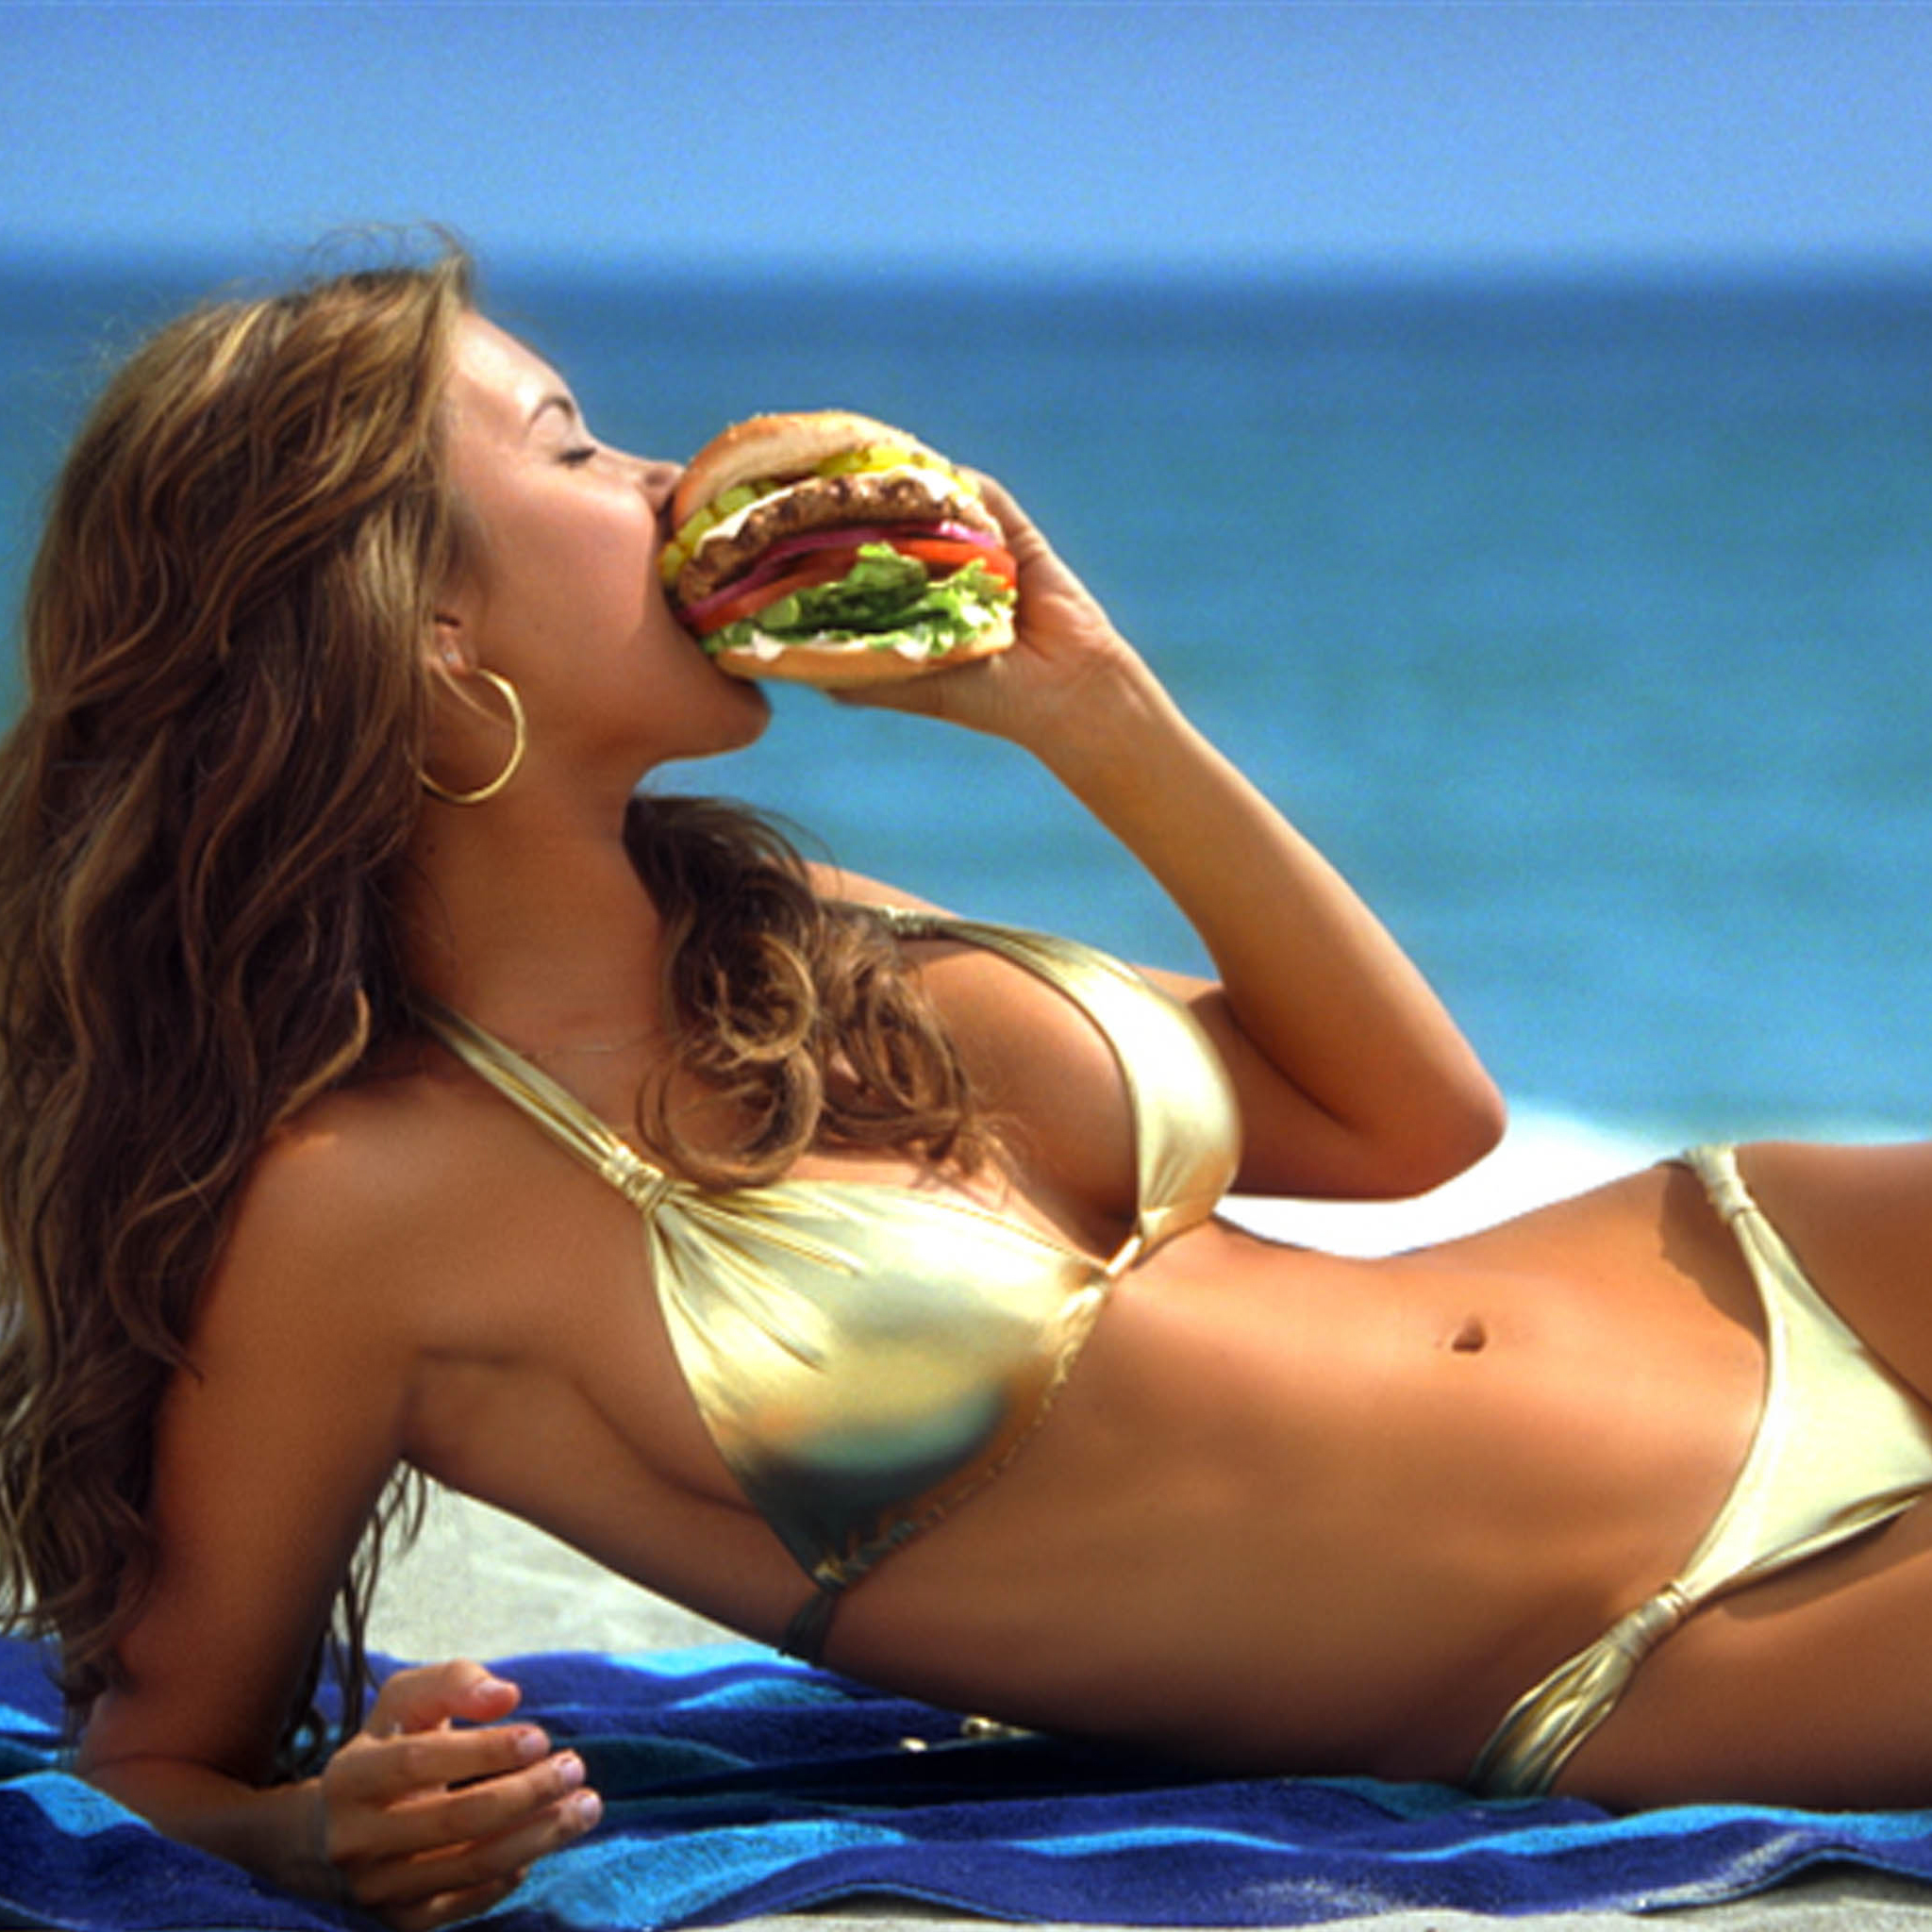 Sexy-Burger-3Wallpapers-iPad-Retina